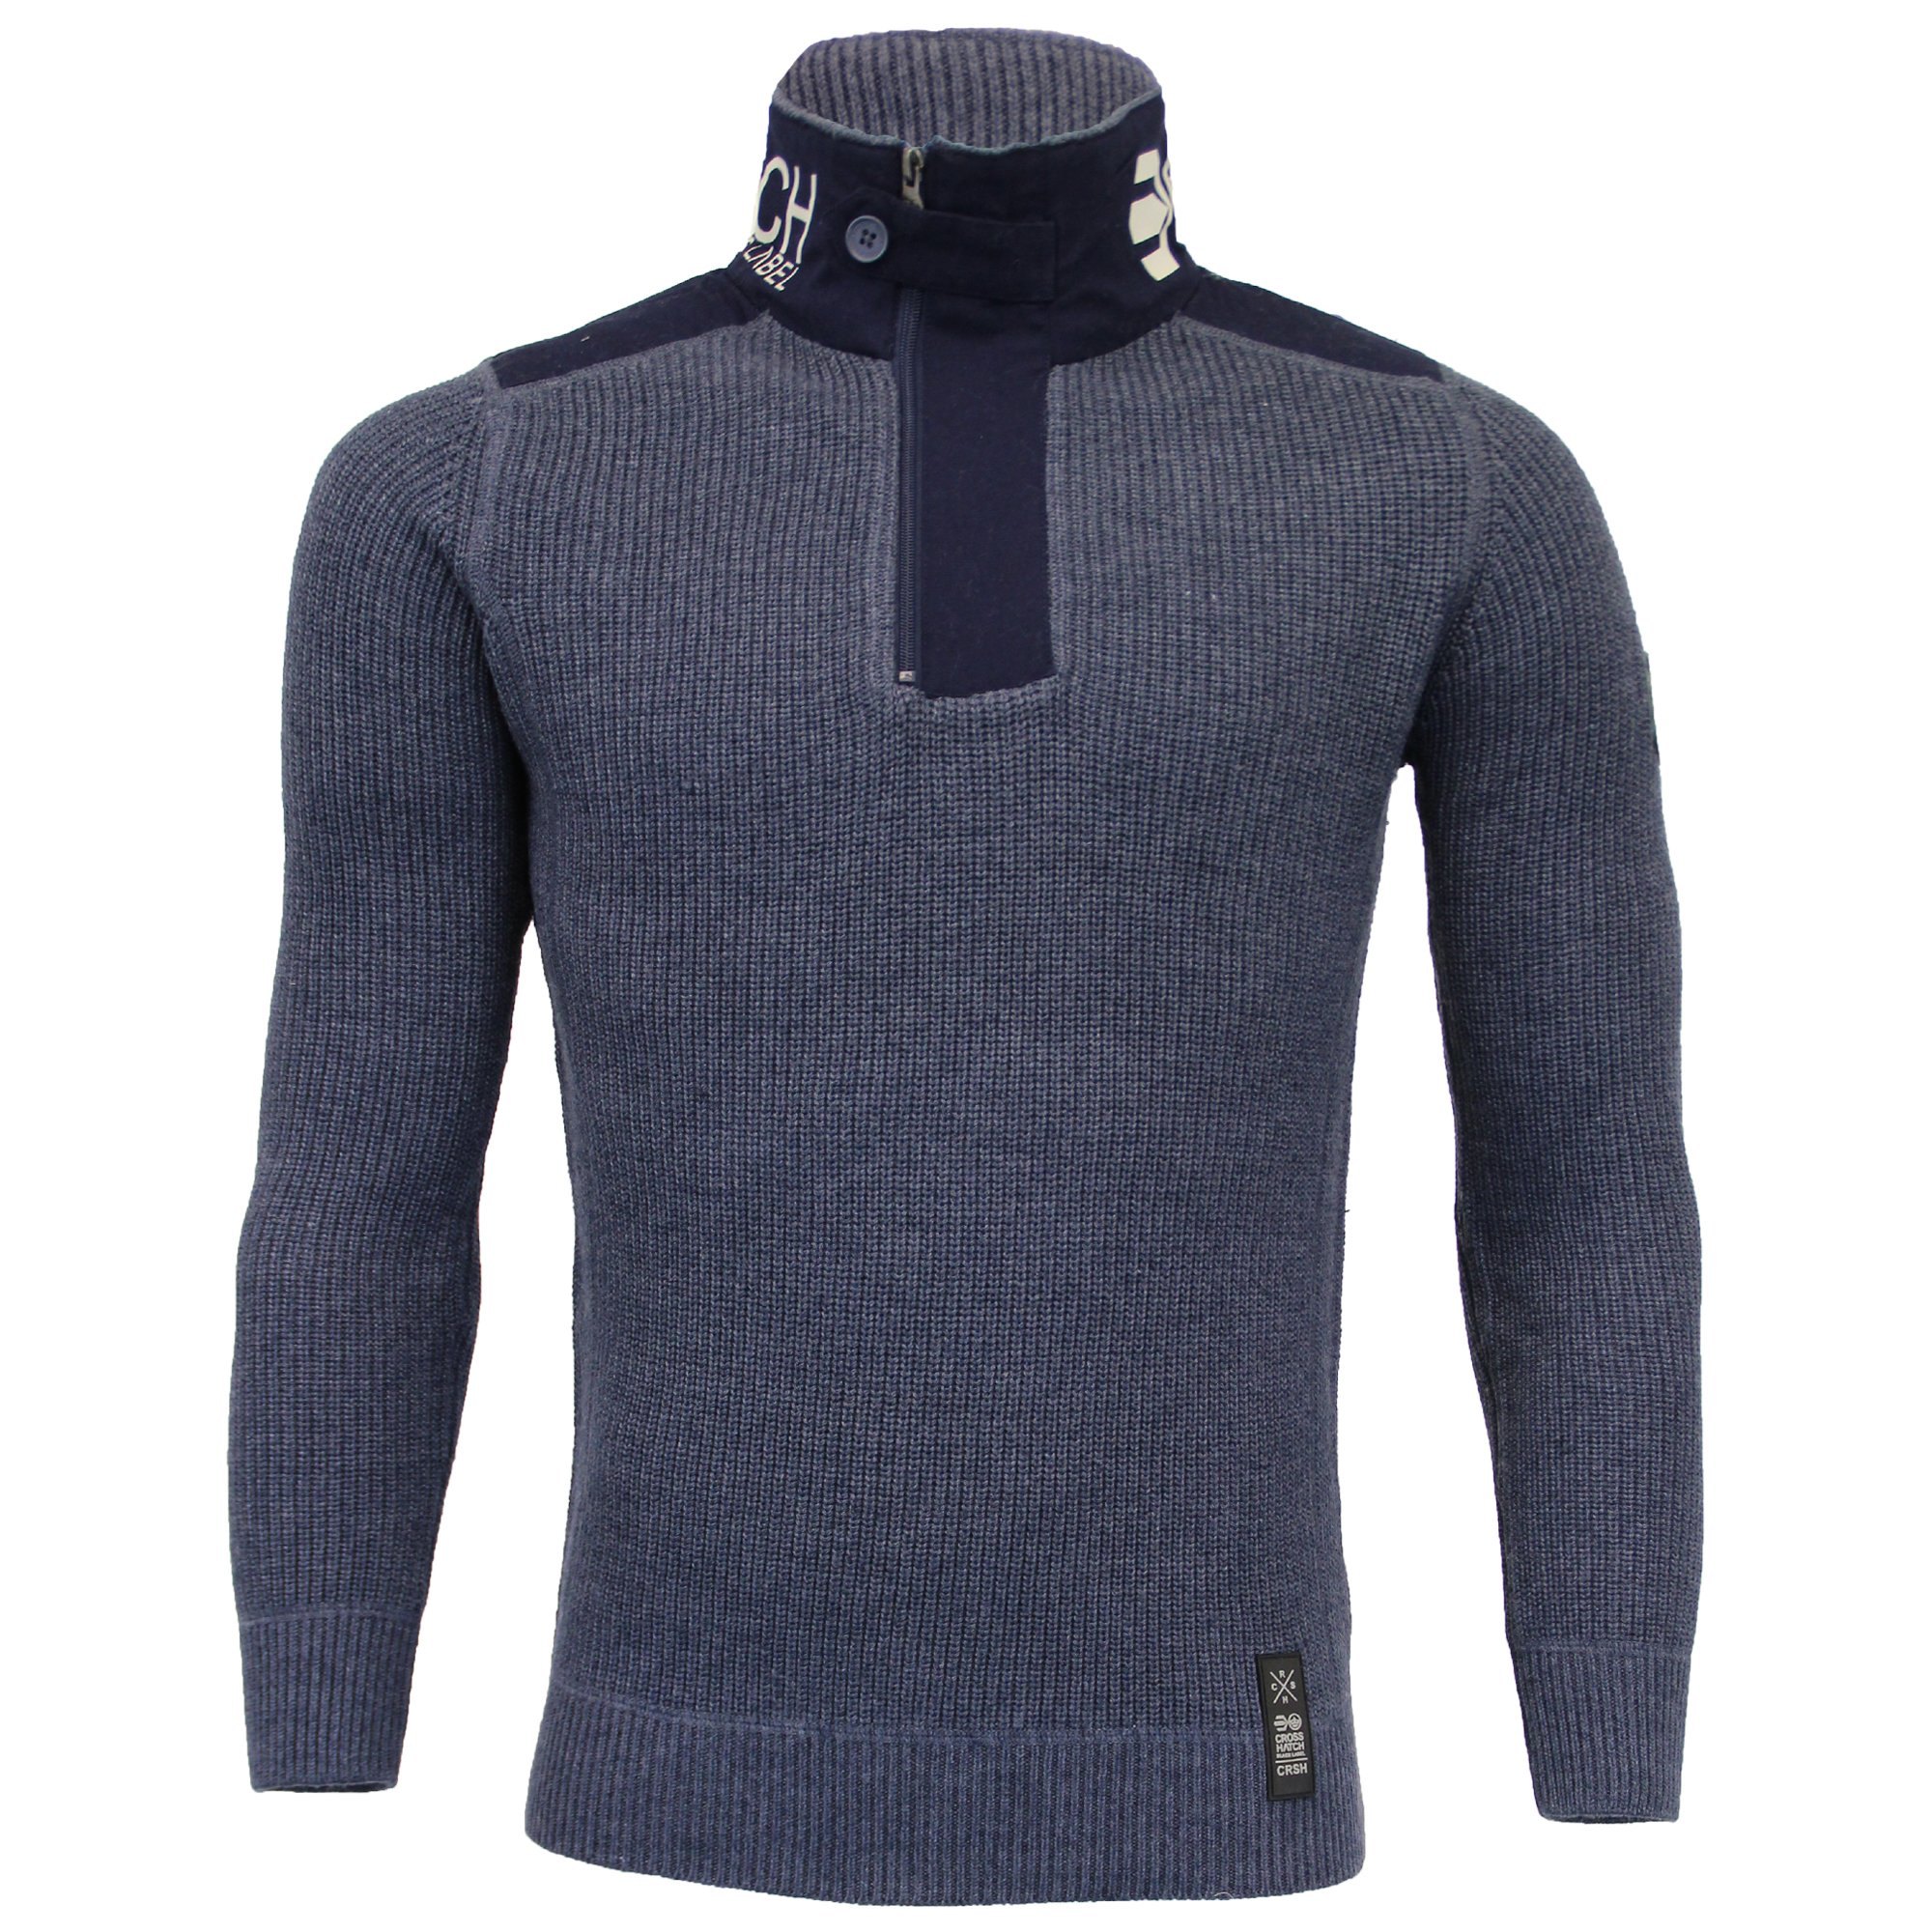 Mens-Knitted-Cotton-Crosshatch-Jumper-Sweater-Pullover-Waffle-Top-Zip-Winter-New thumbnail 13